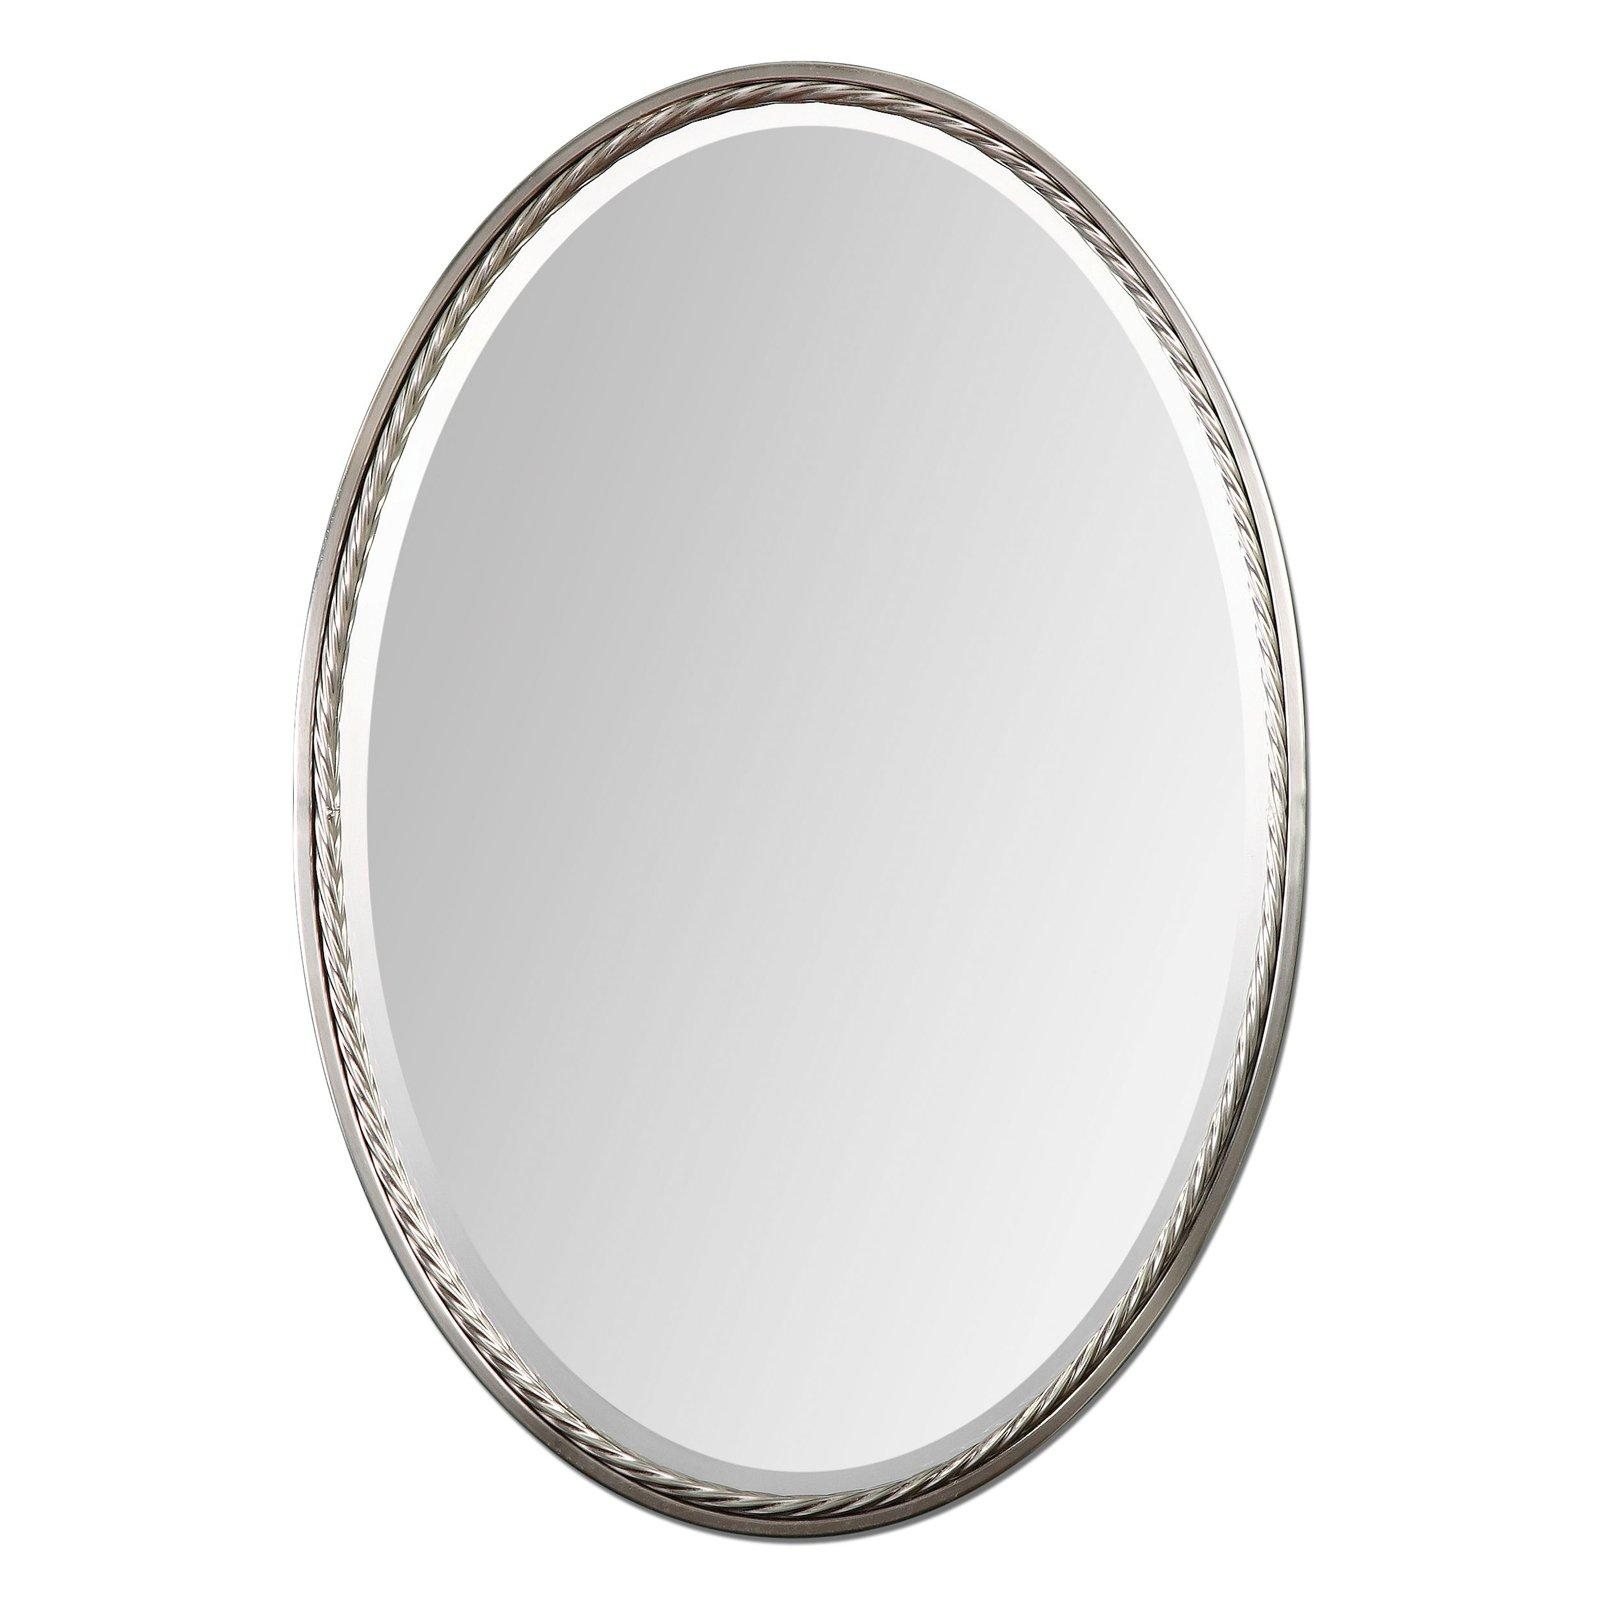 Uttermost Sherise Nickel Finish Oval Beveled Mirror – 22W X 32H In Intended For Beveled Edge Oval Mirror (Photo 19 of 20)